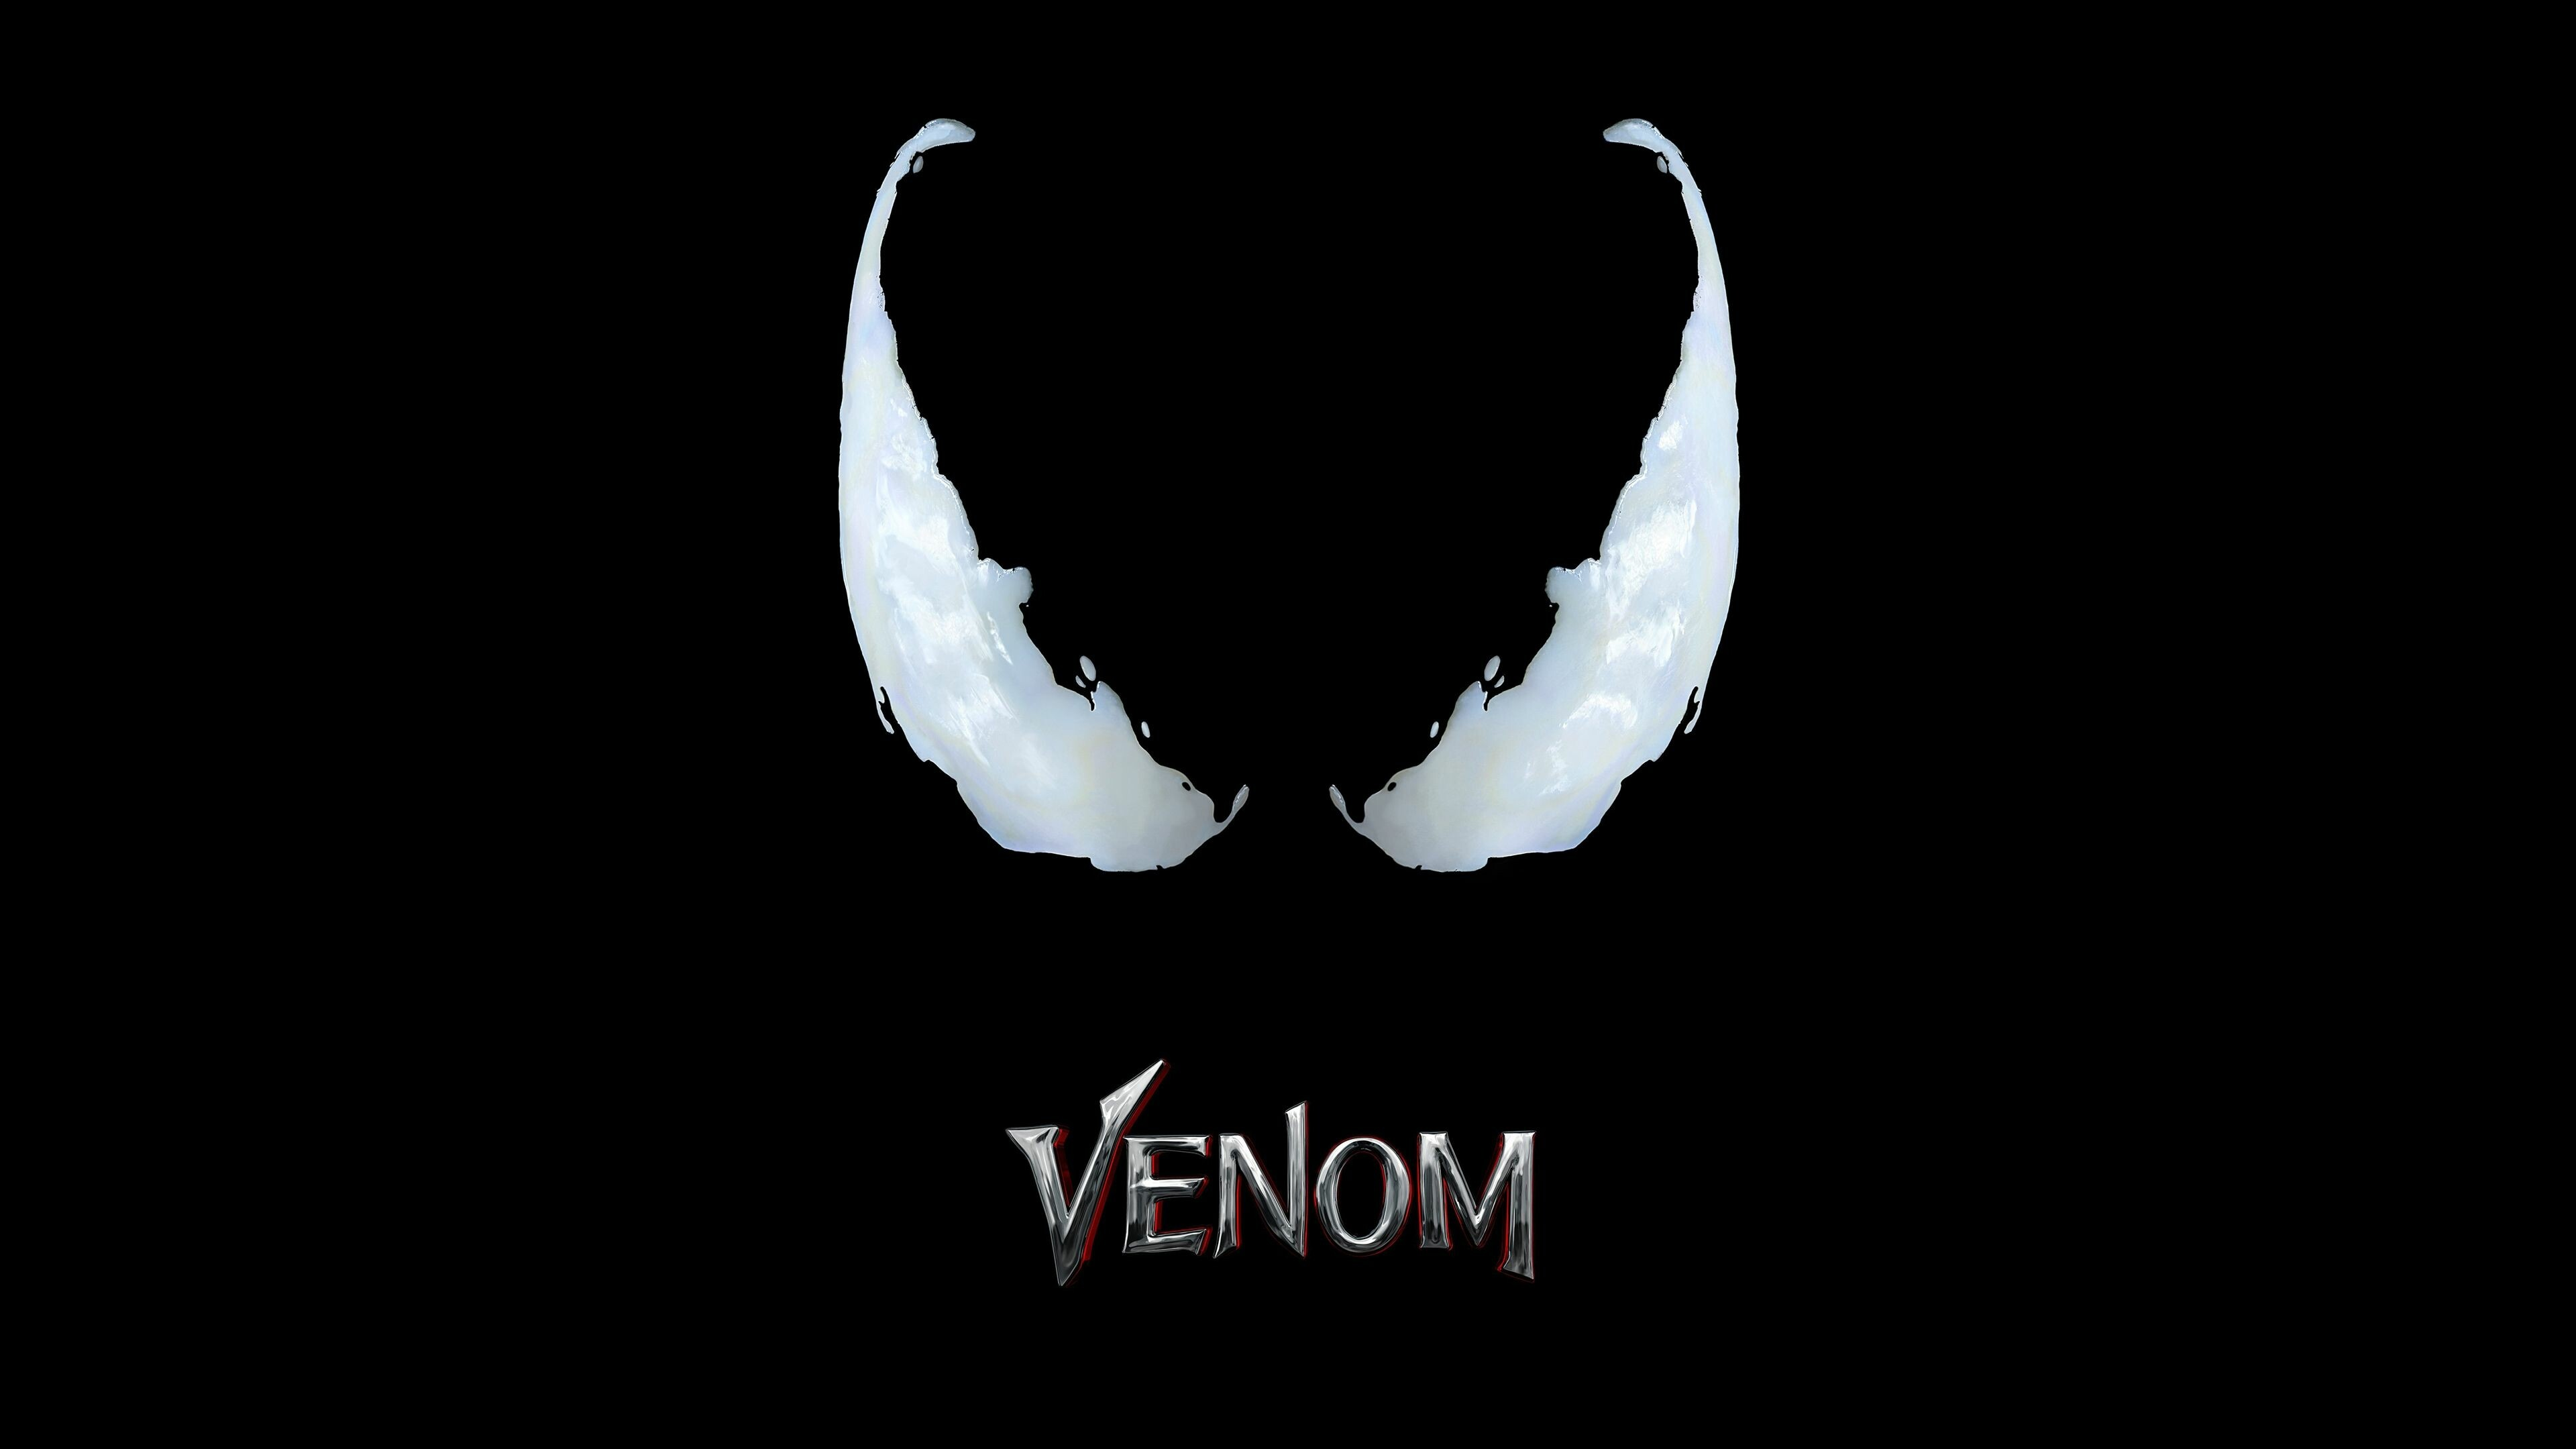 Hd Wallpapers For Pc Venom